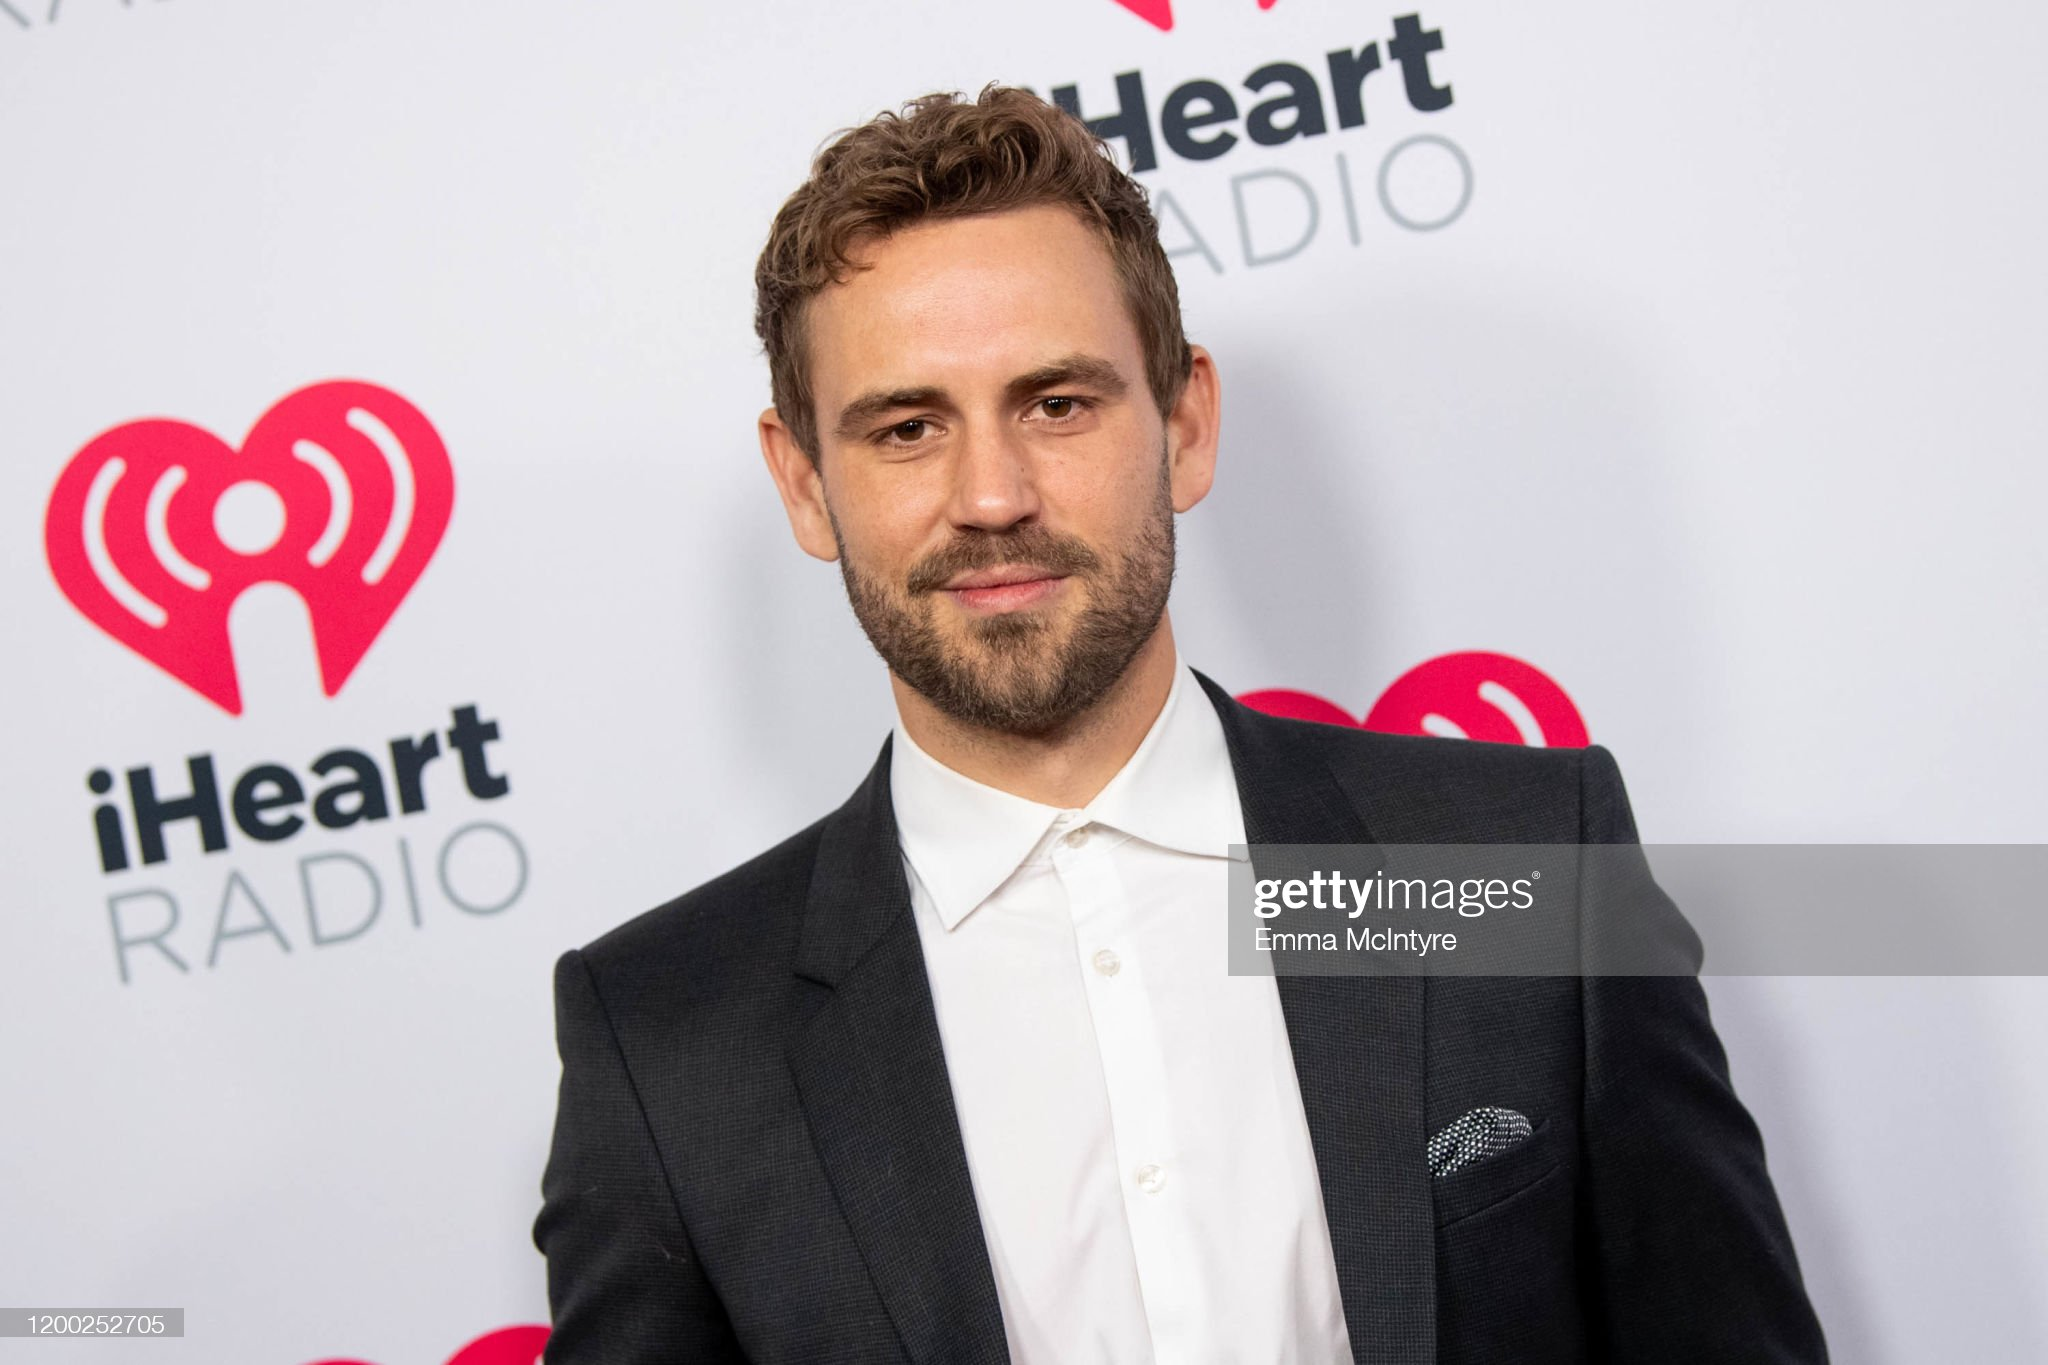 Nick Viall - Bachelor 21 - FAN Forum - Discussion #27 - Page 69 Nick-viall-arrives-at-the-2020-iheartradio-podcast-awards-at-theater-picture-id1200252705?s=2048x2048